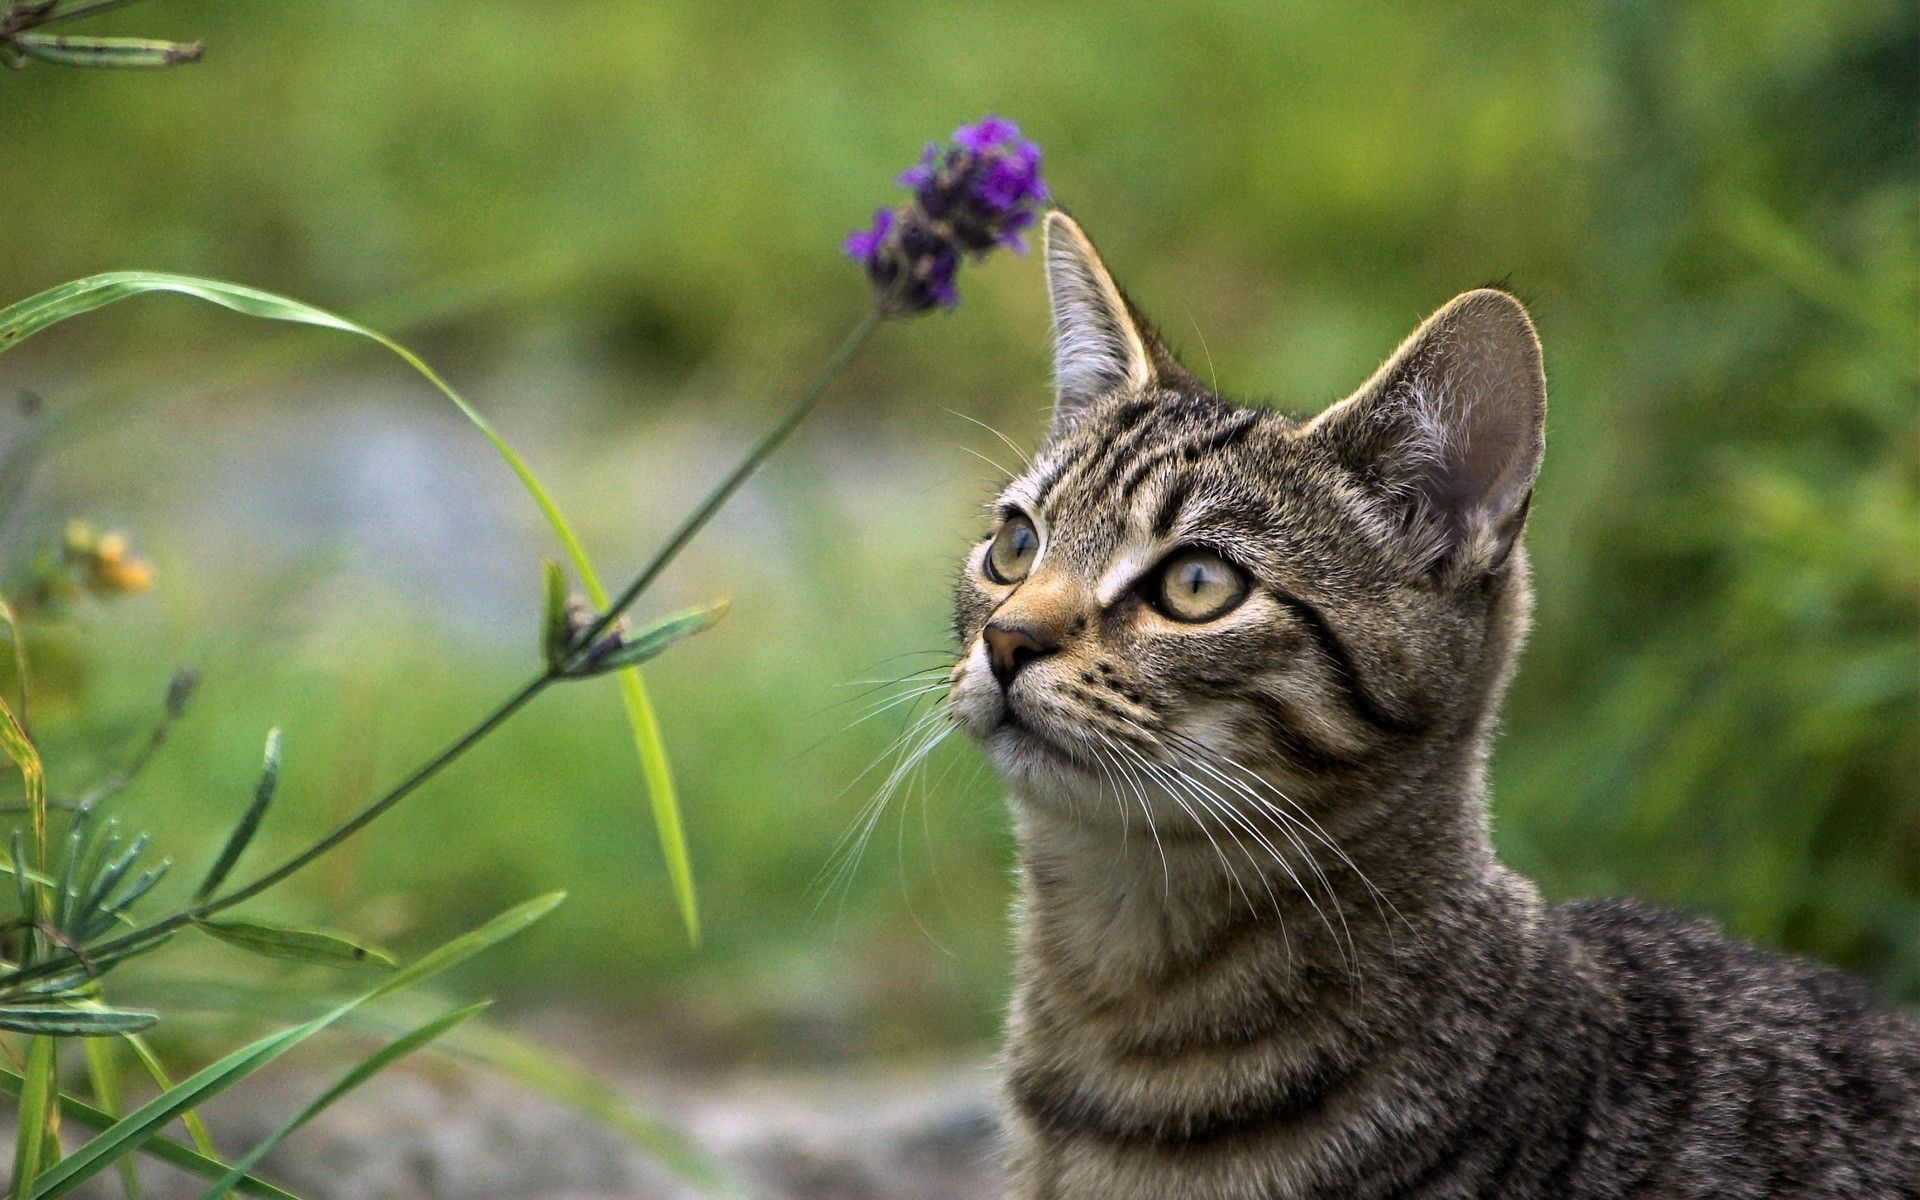 53963 download wallpaper Animals, Cat, Grass, Muzzle, Sight, Opinion screensavers and pictures for free